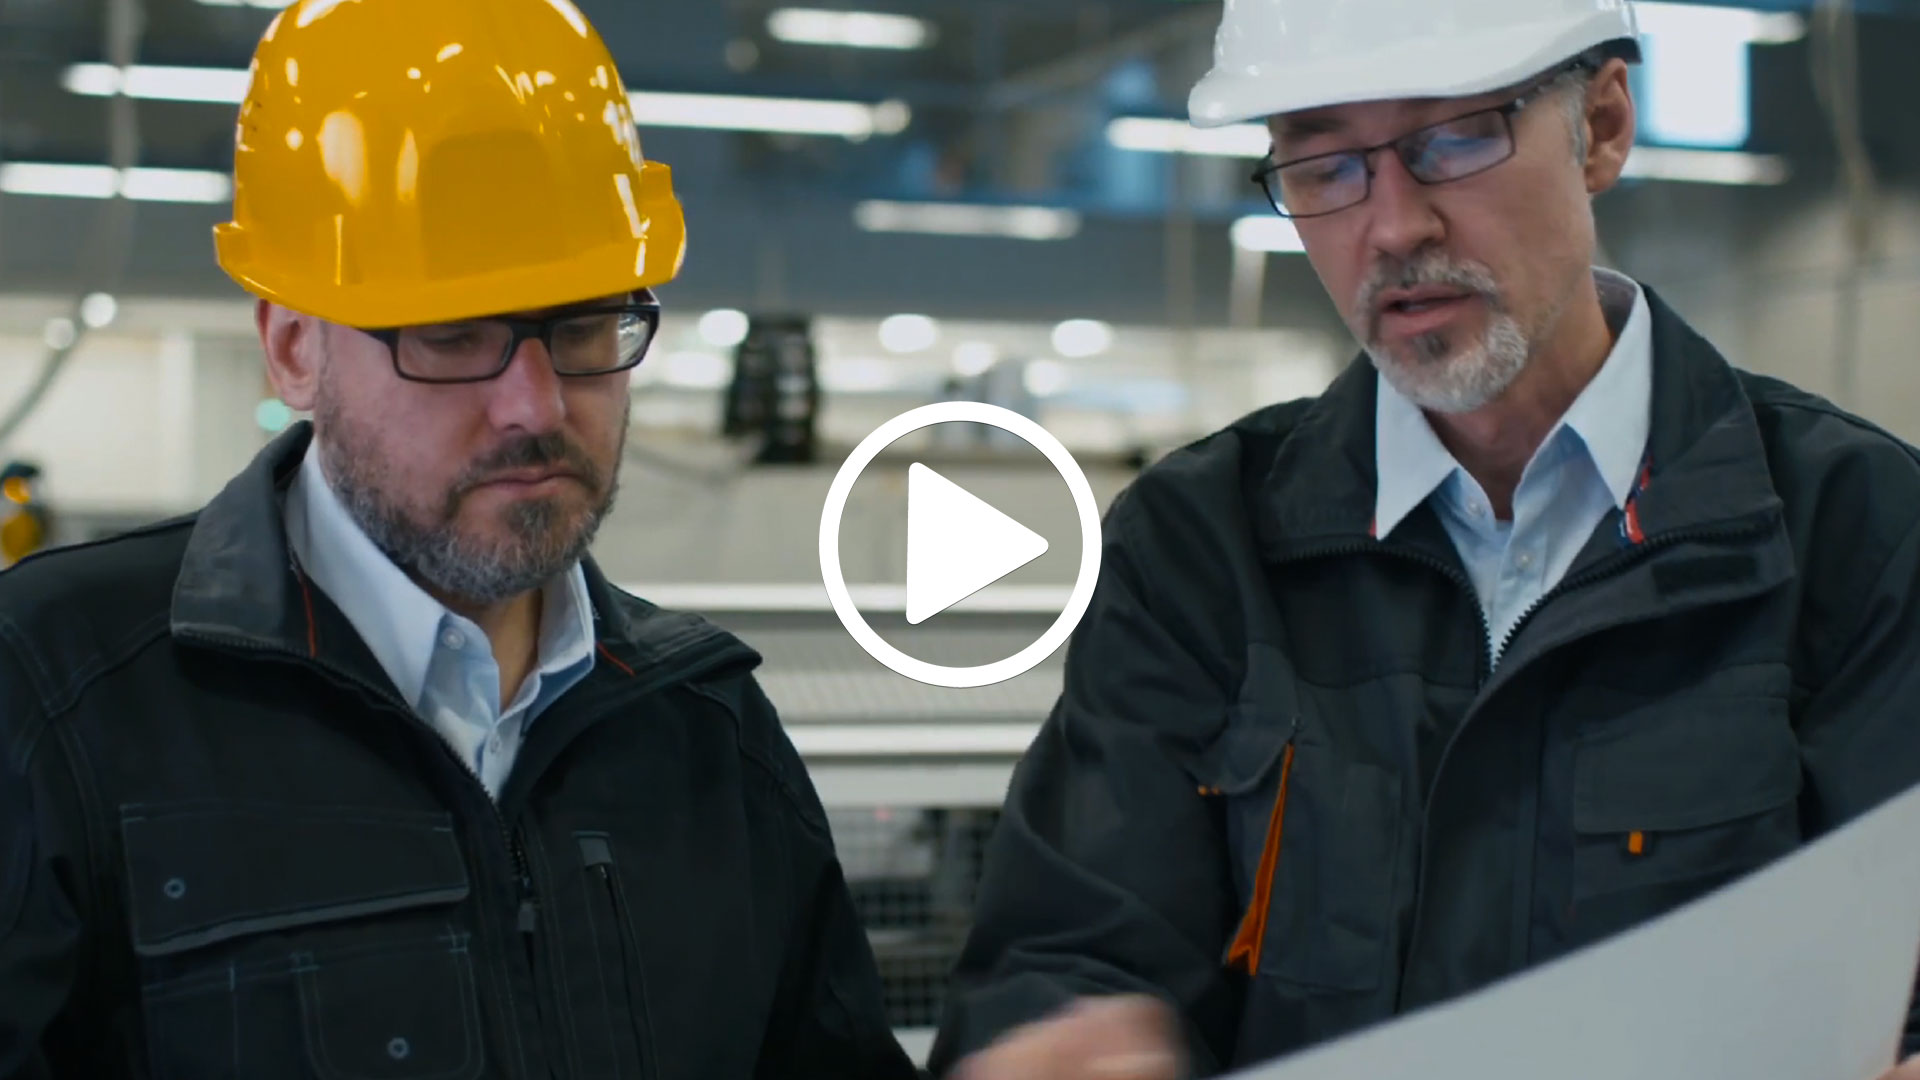 Watch our careers video for available job opening Field Support Representative in Lisle, IL